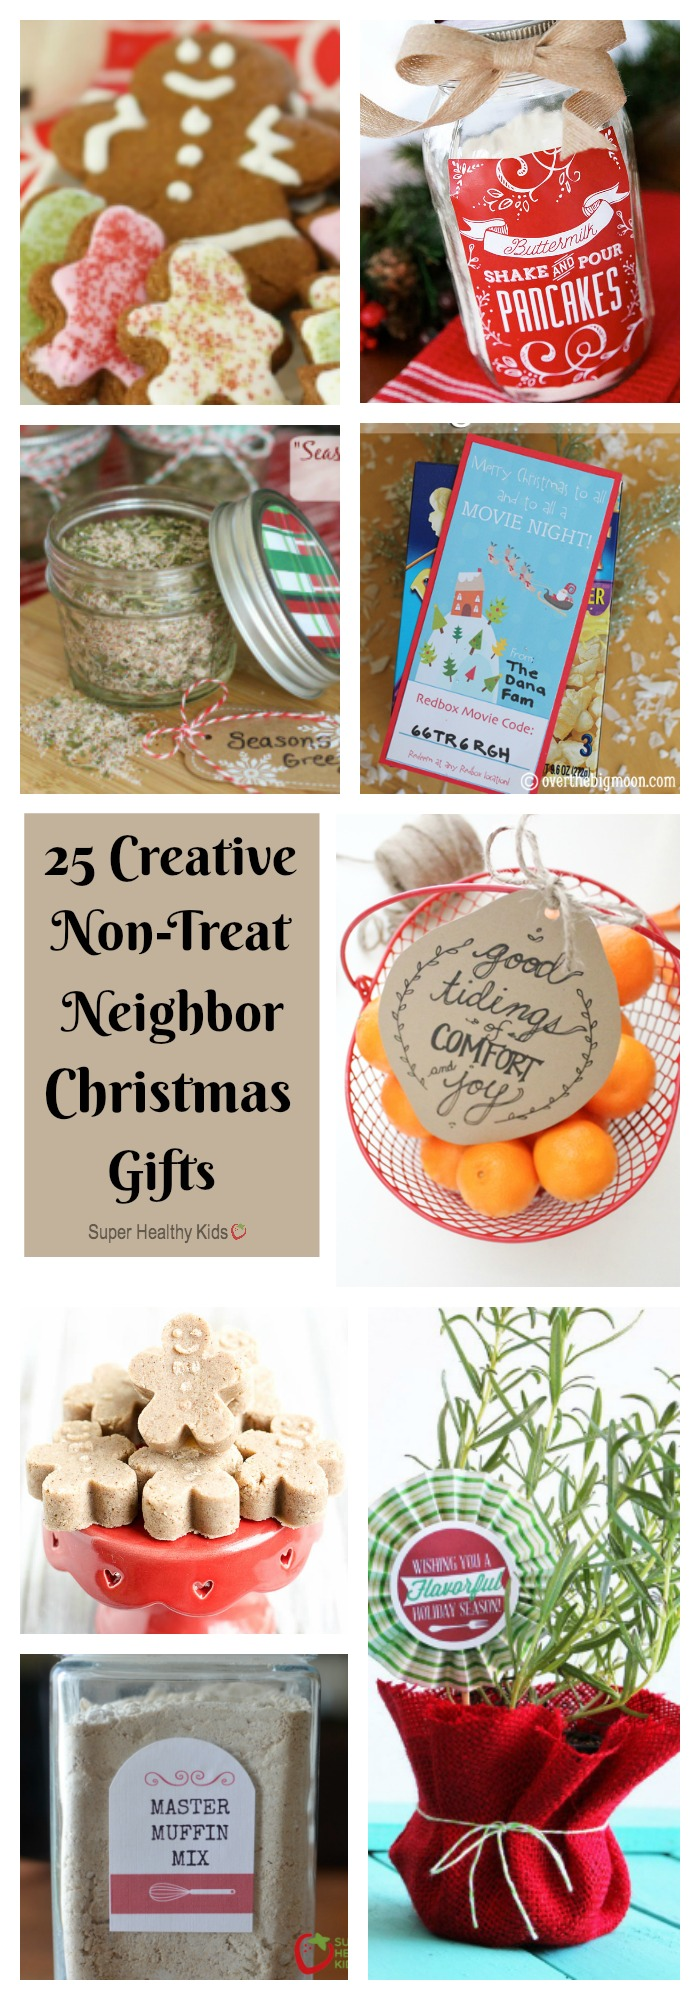 "25 Creative Non-Treat Neighbor Christmas Gifts. We have 25 festive and fabulous gift ideas, which are healthy and inexpensive, to use for neighbors or anyone else on your ""nice list"" this holiday season. http://www.superhealthykids.com/25-festive-fabulous-neighbor-christmas-gifts/"